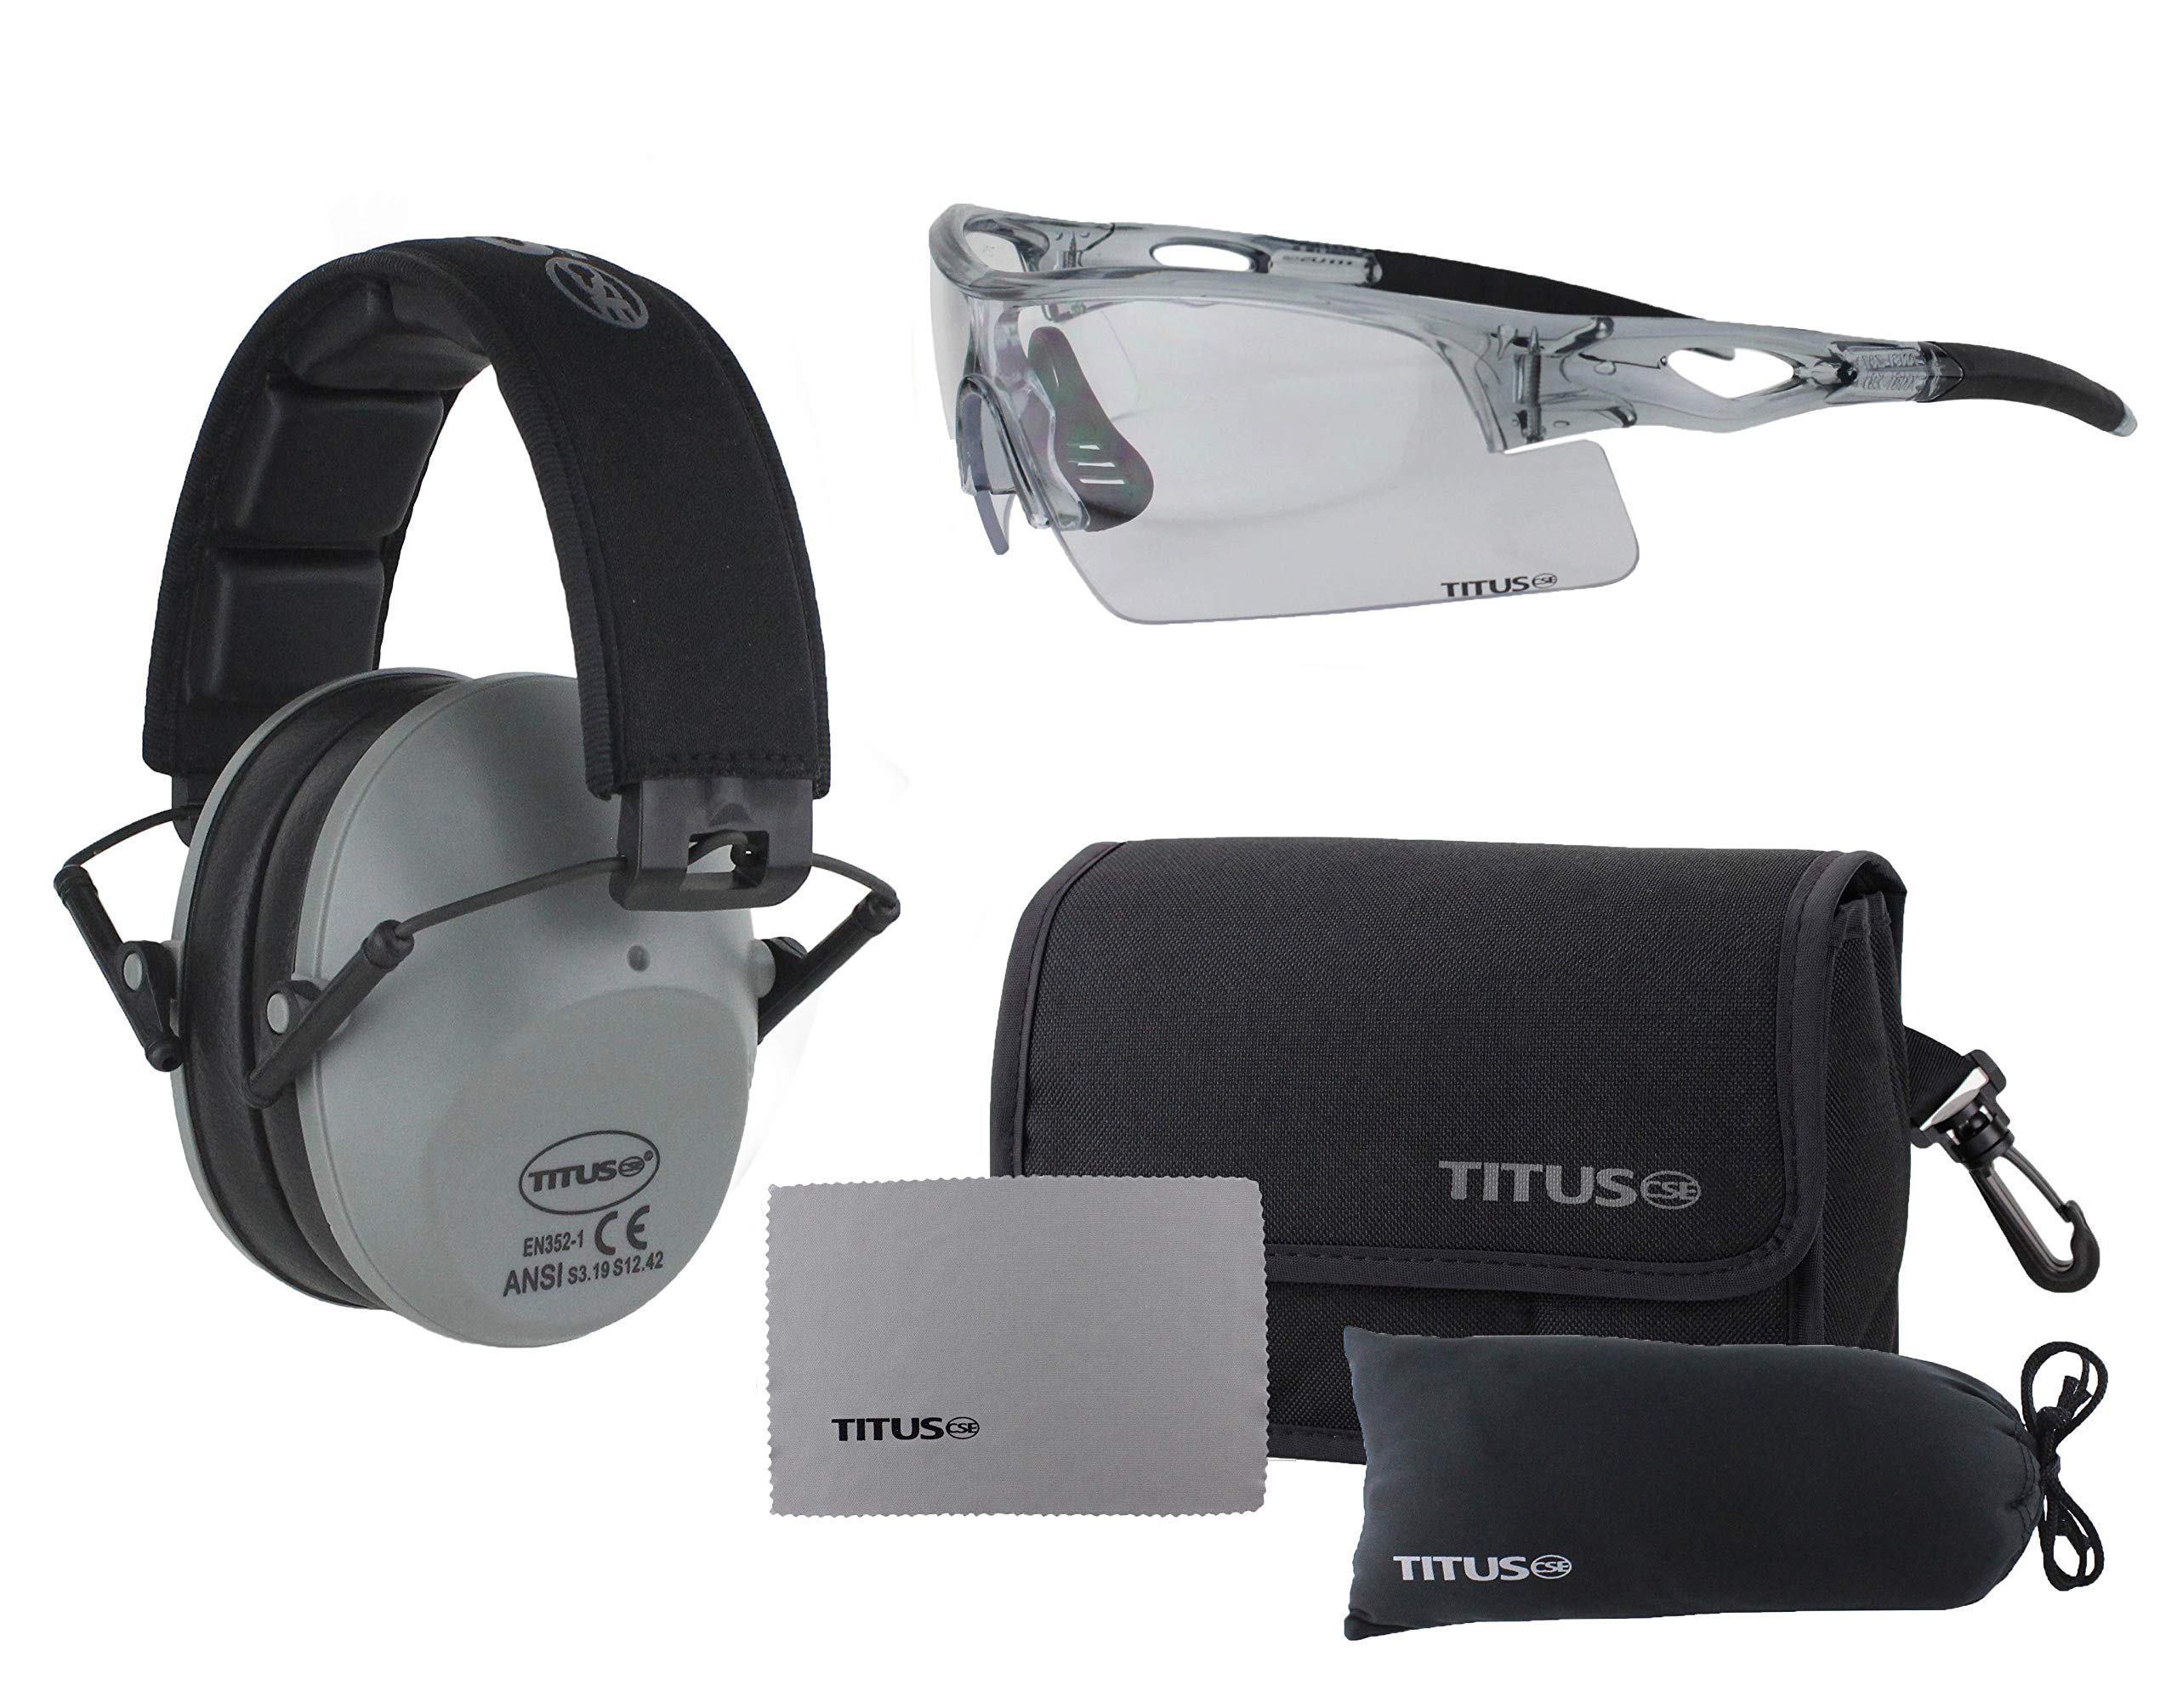 TITUS Slim-line Earmuffs and Safety Glasses Combo Pack (Grey, Grey Frame w/Clear Lens) by Titus